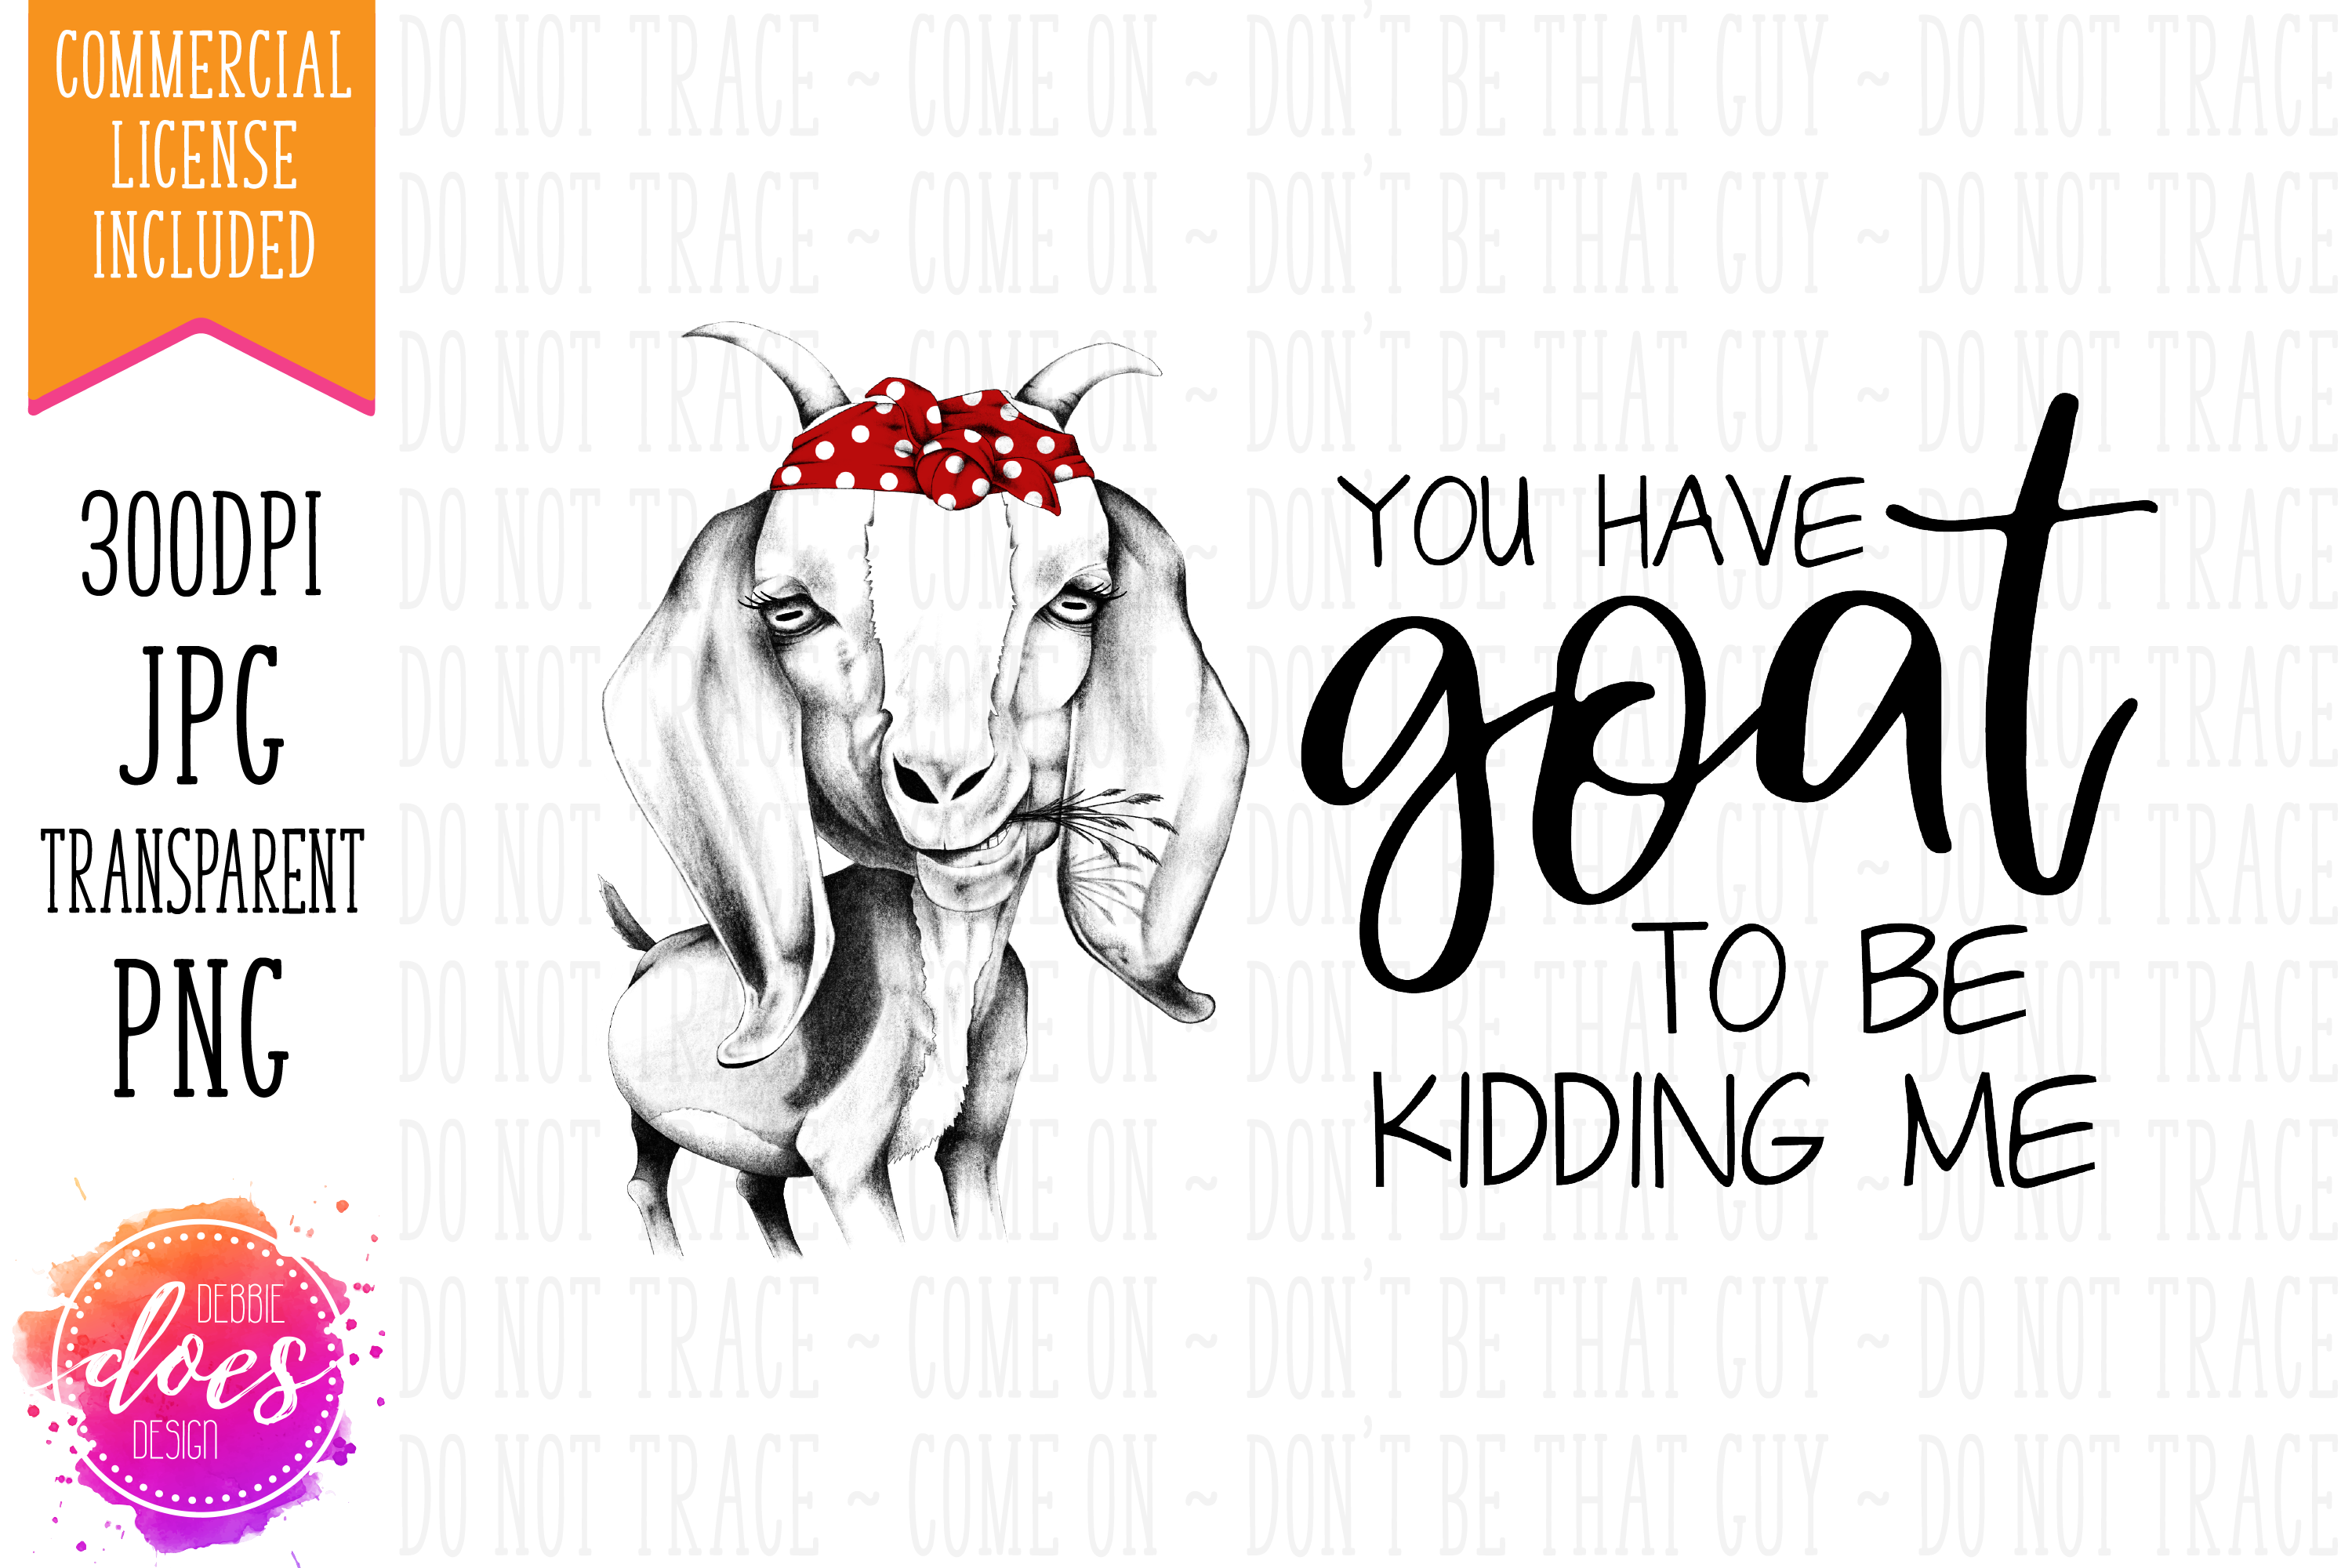 You Have GOAT to be Kidding Me - Hand Drawn Printable Design example image 2